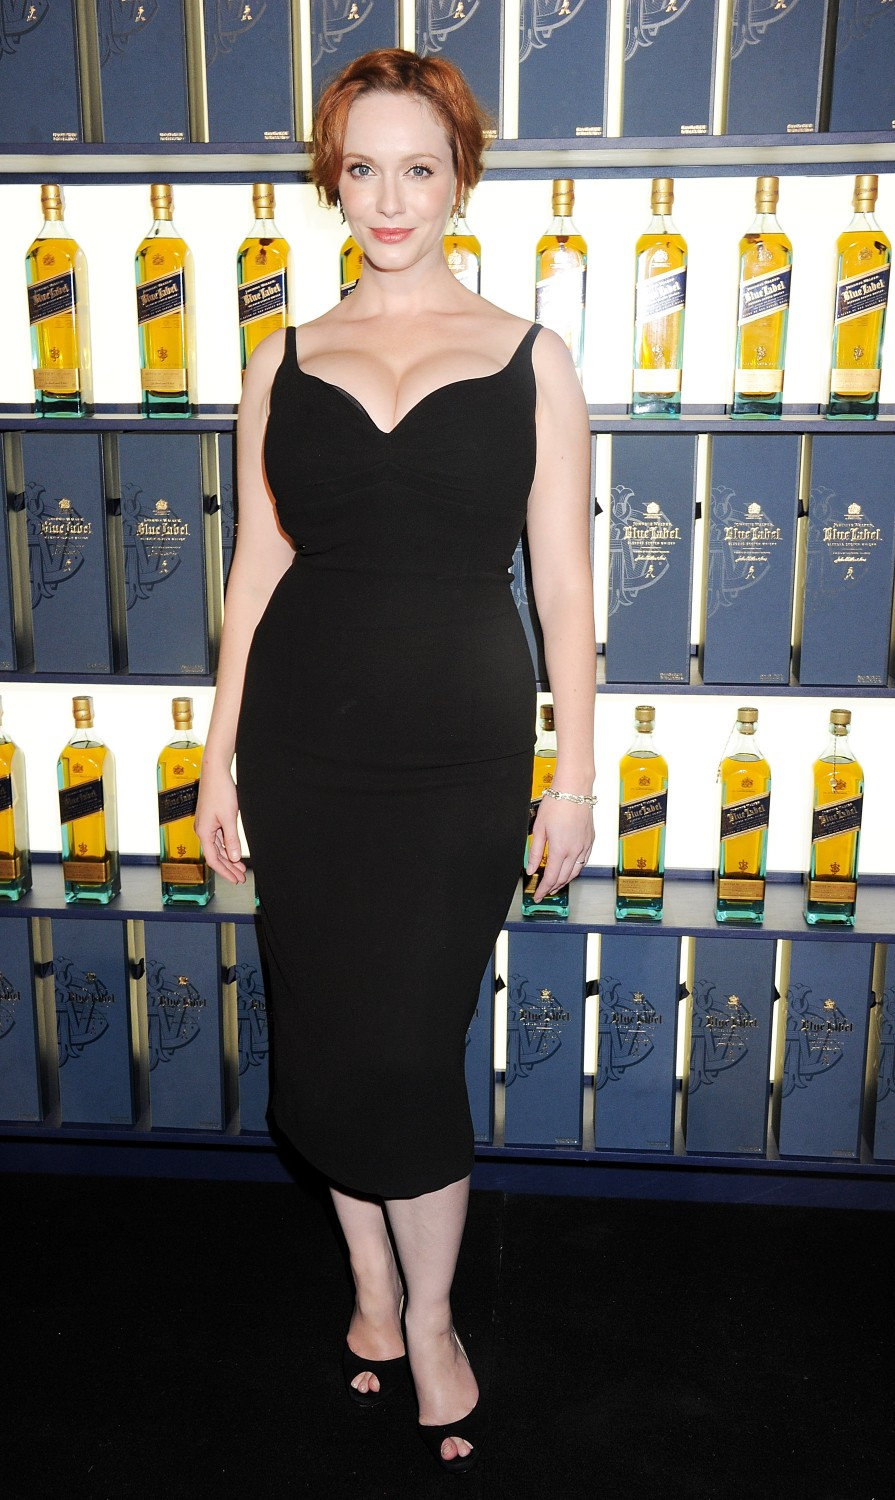 2012-08-06-ChristinaHendricks4.jpg